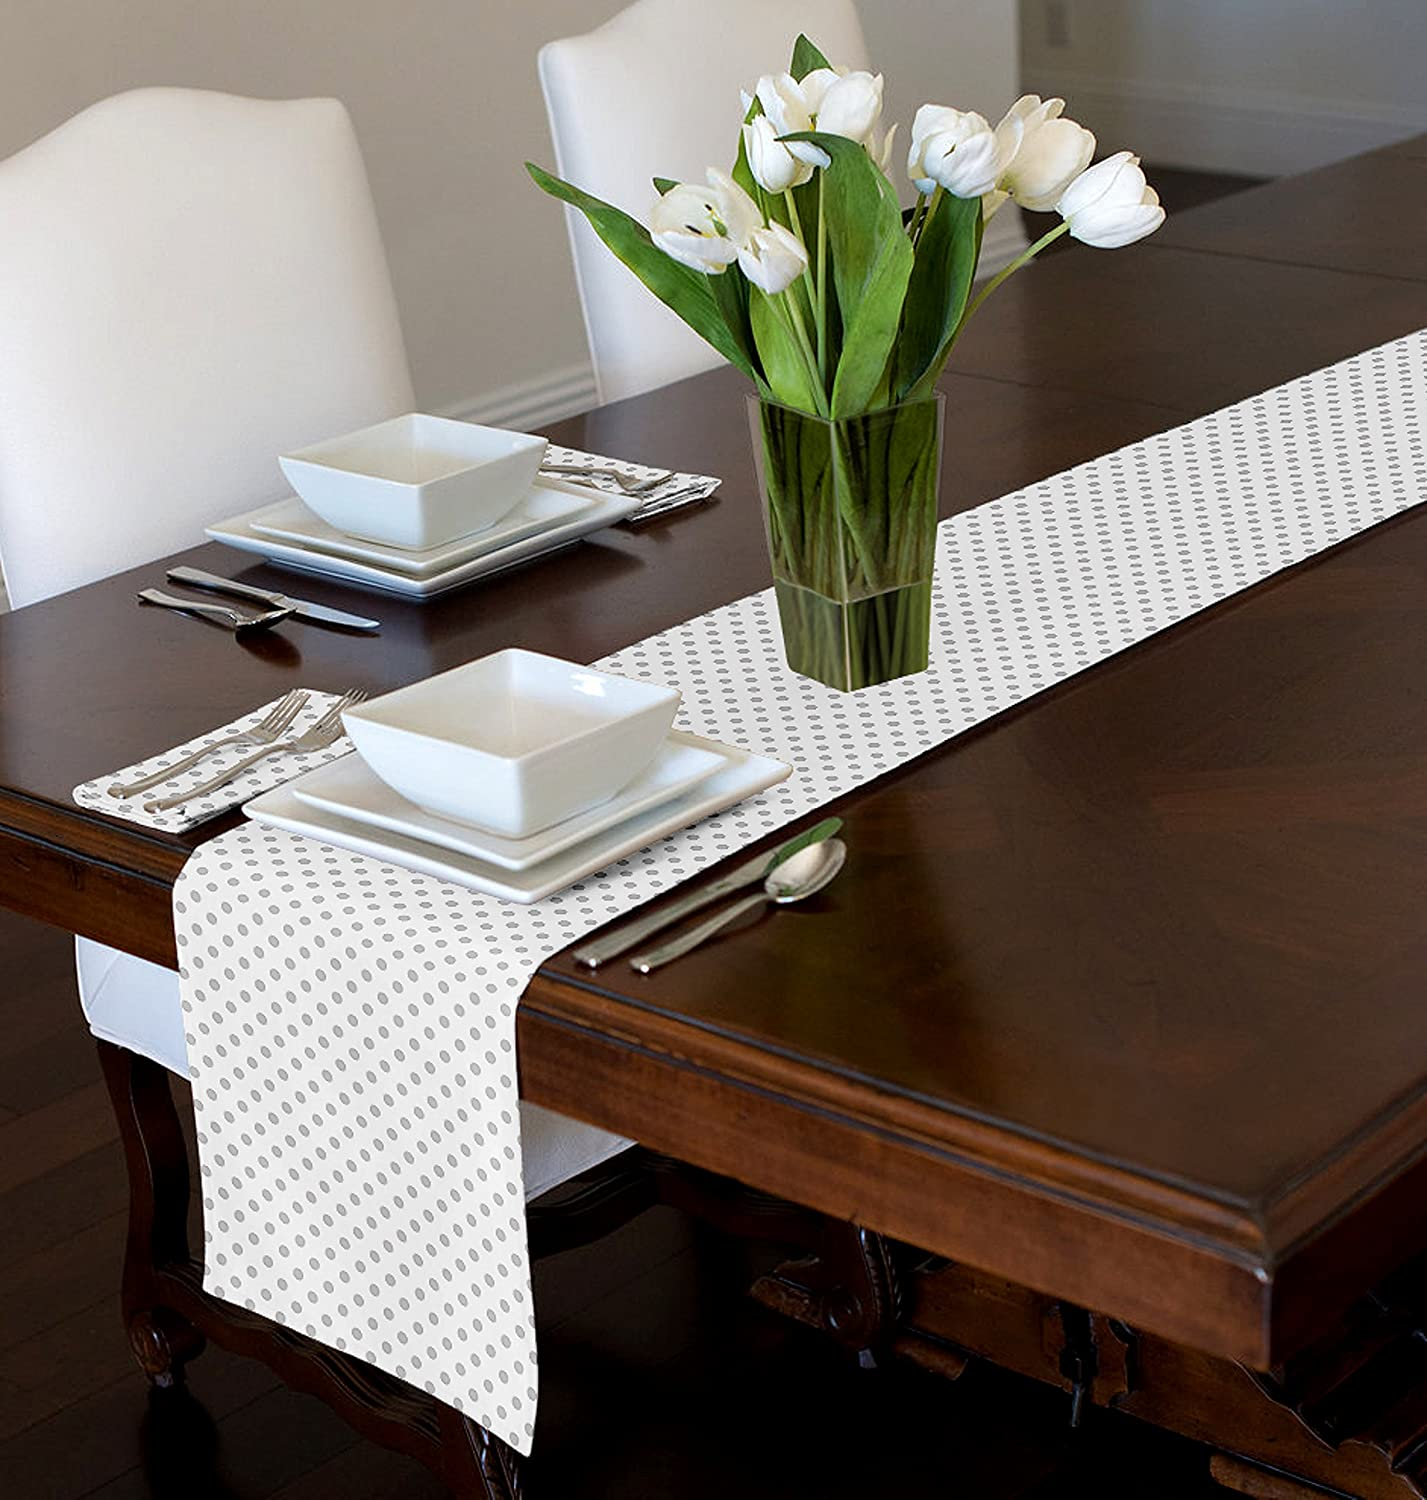 A LuxeHome White and Grey Modern Contemporary Polka Dot Table Runner Mat Topper 12' x 72'